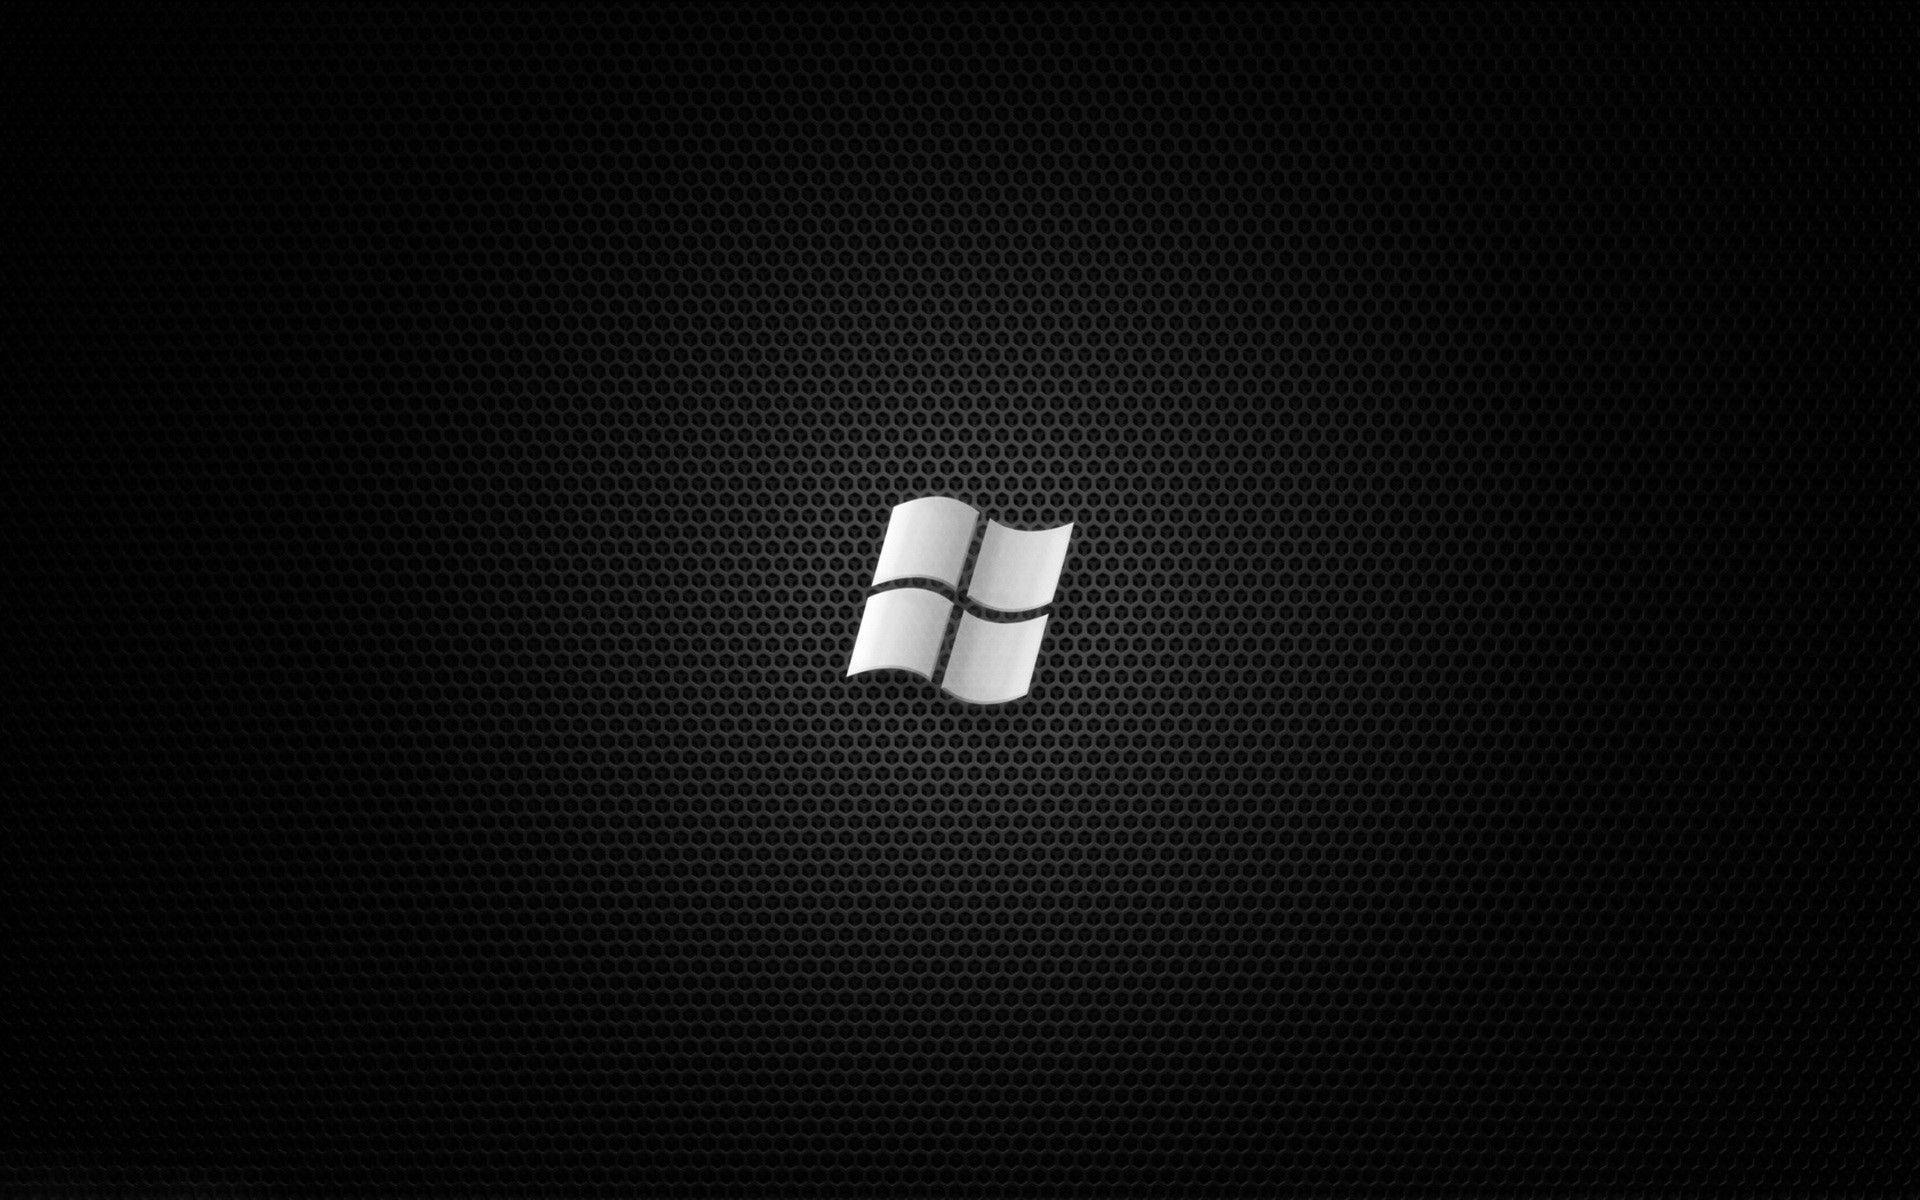 HD Black And White Wallpapers for Windows « Desktop Backgrounds